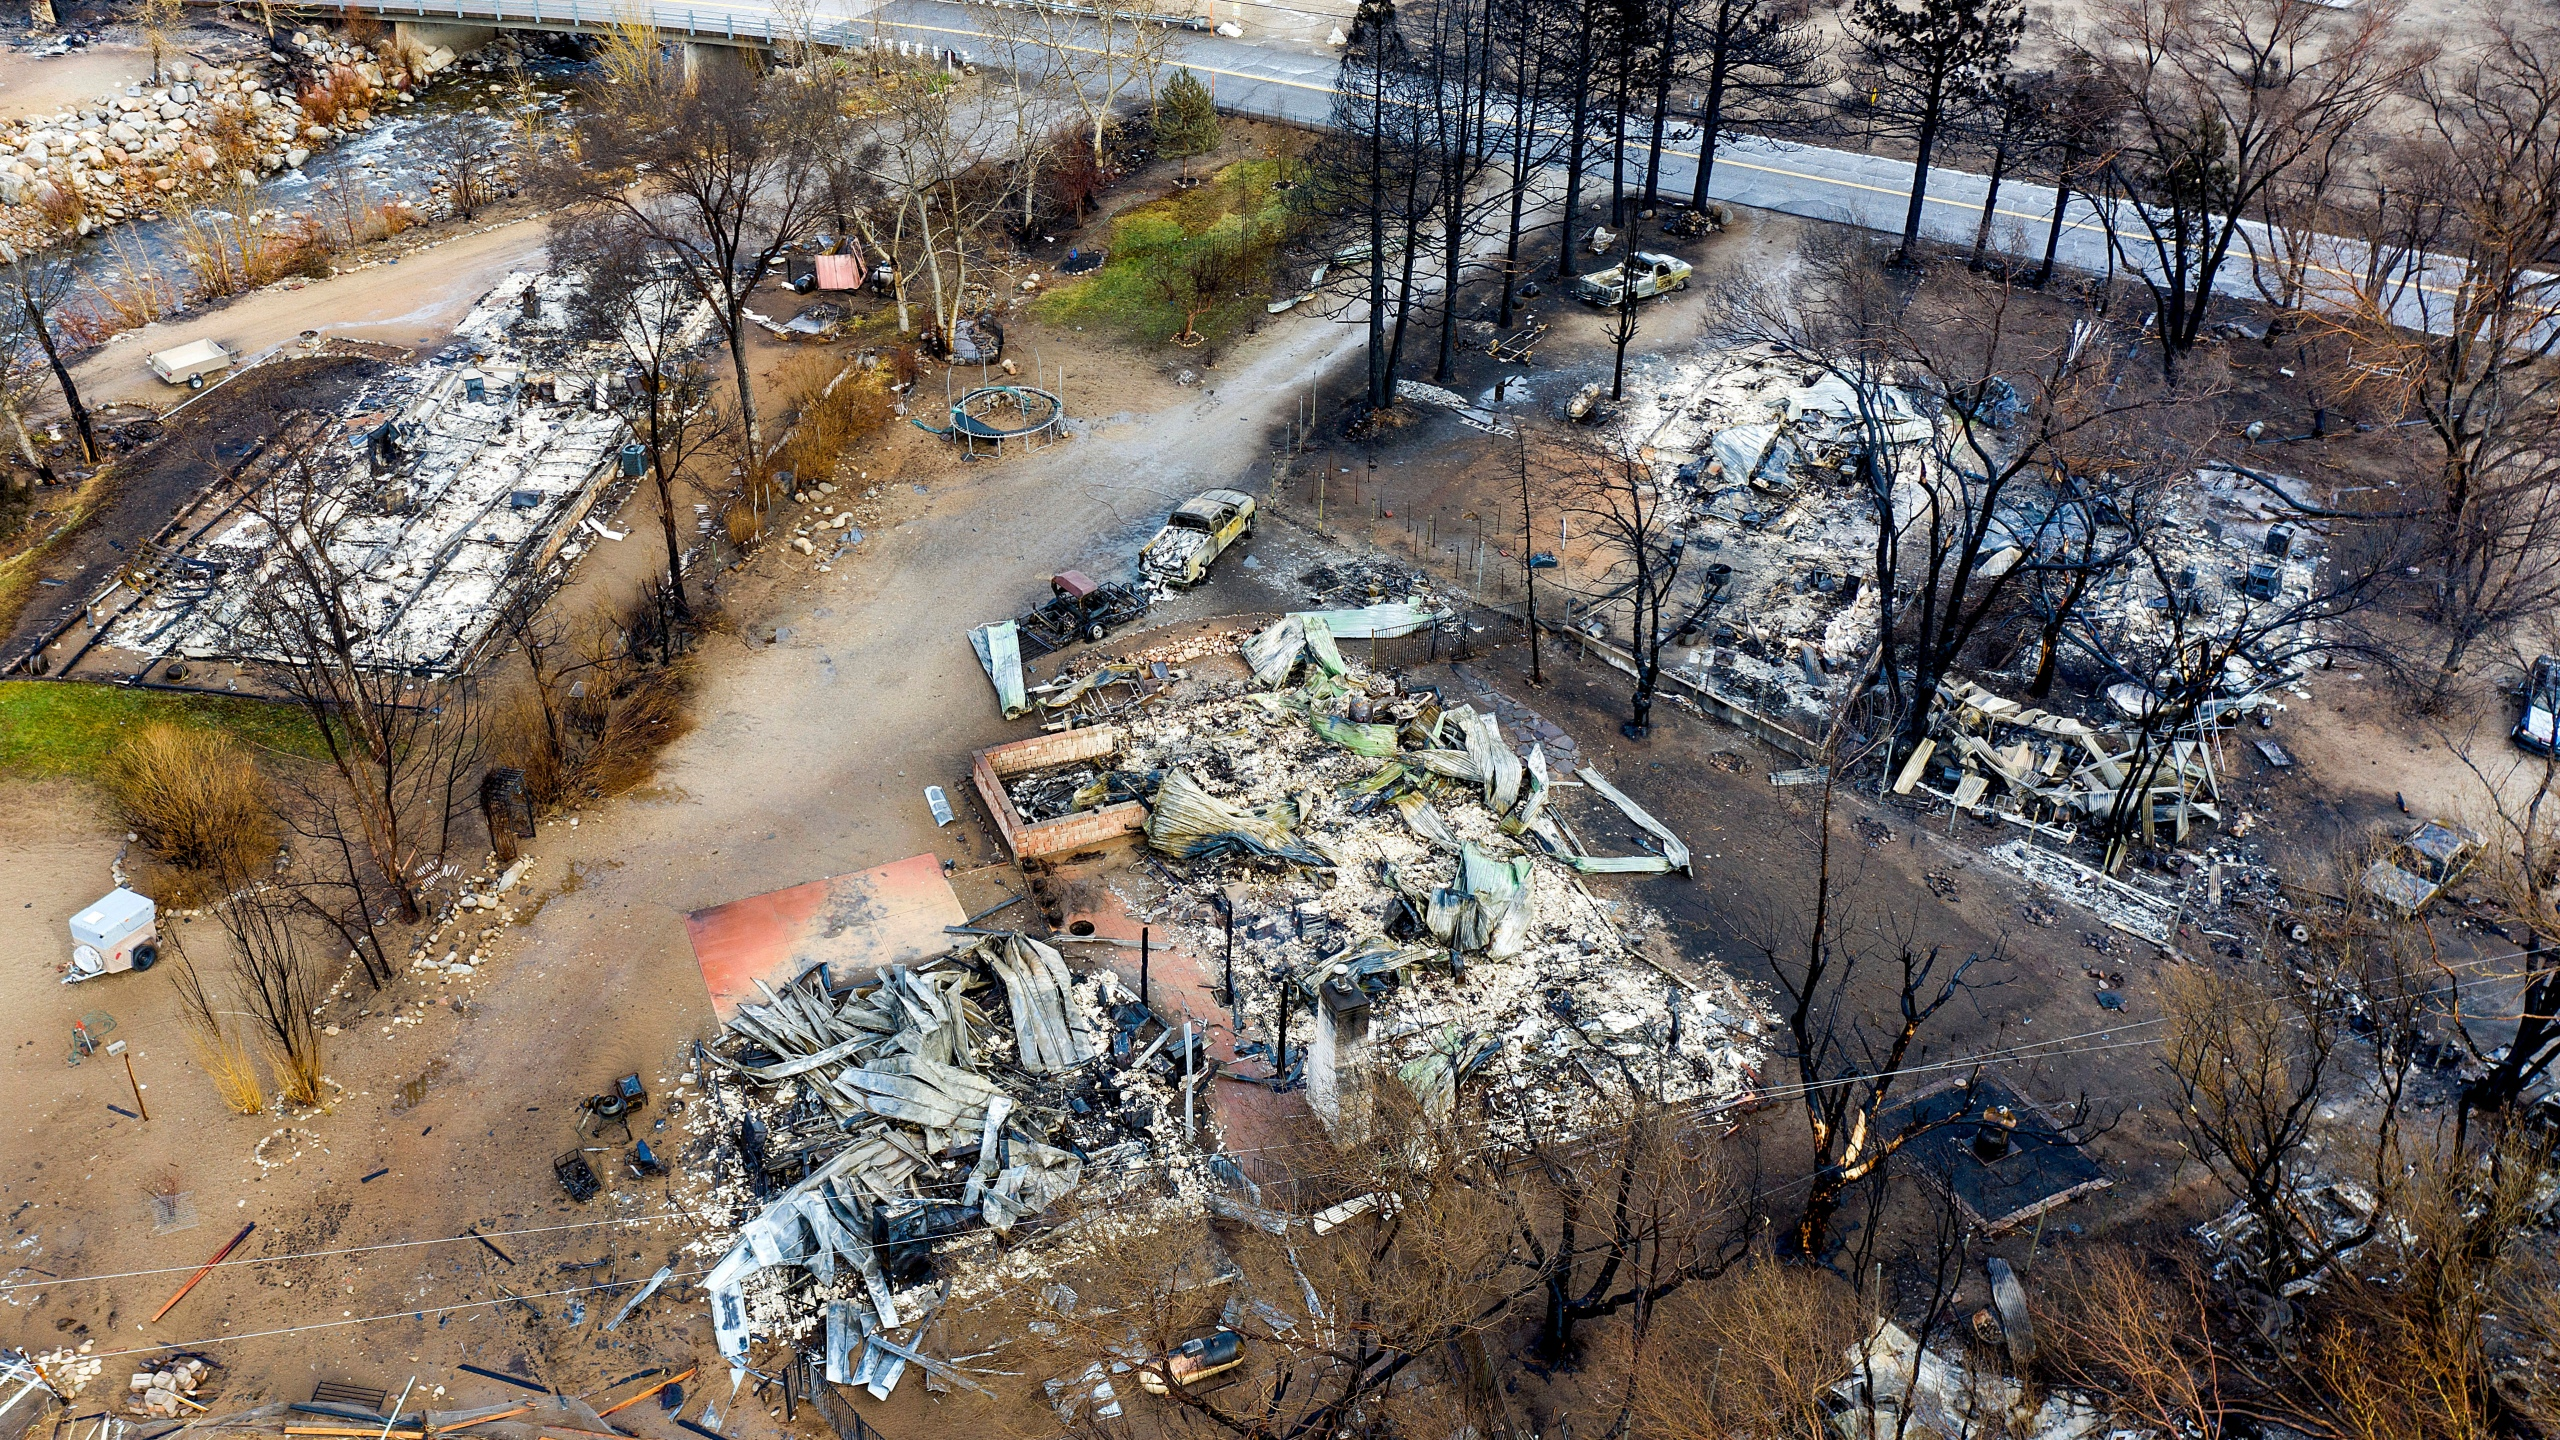 In this photo taken by a drone, homes destroyed by the Mountain View Fire line a street in the Walker community in Mono County, Calif., on Nov. 18, 2020. (Noah Berger / Associated Press)